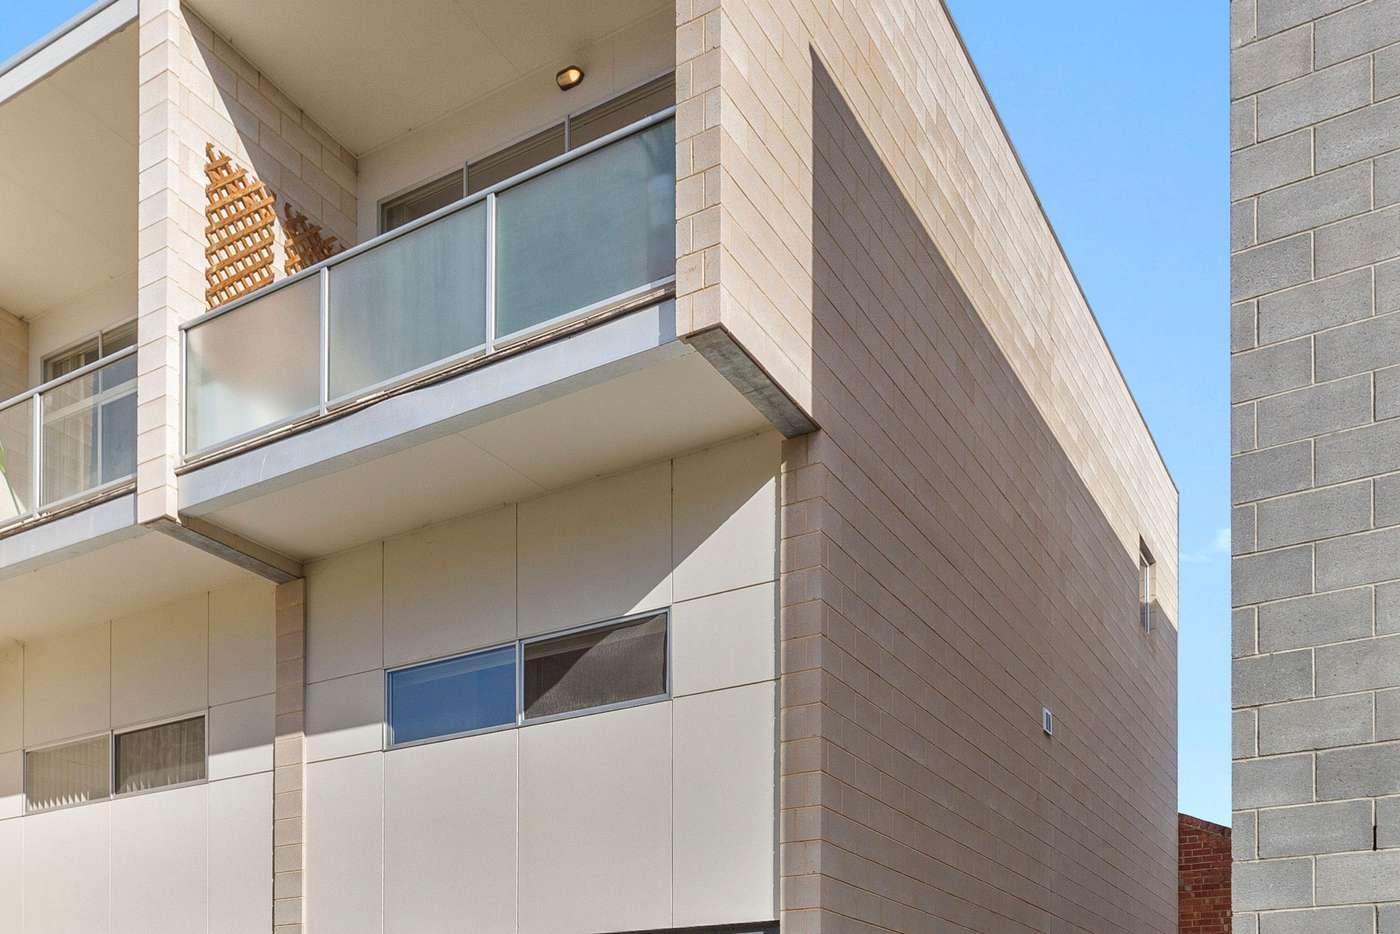 Main view of Homely house listing, 19 Colby Place, Adelaide SA 5000